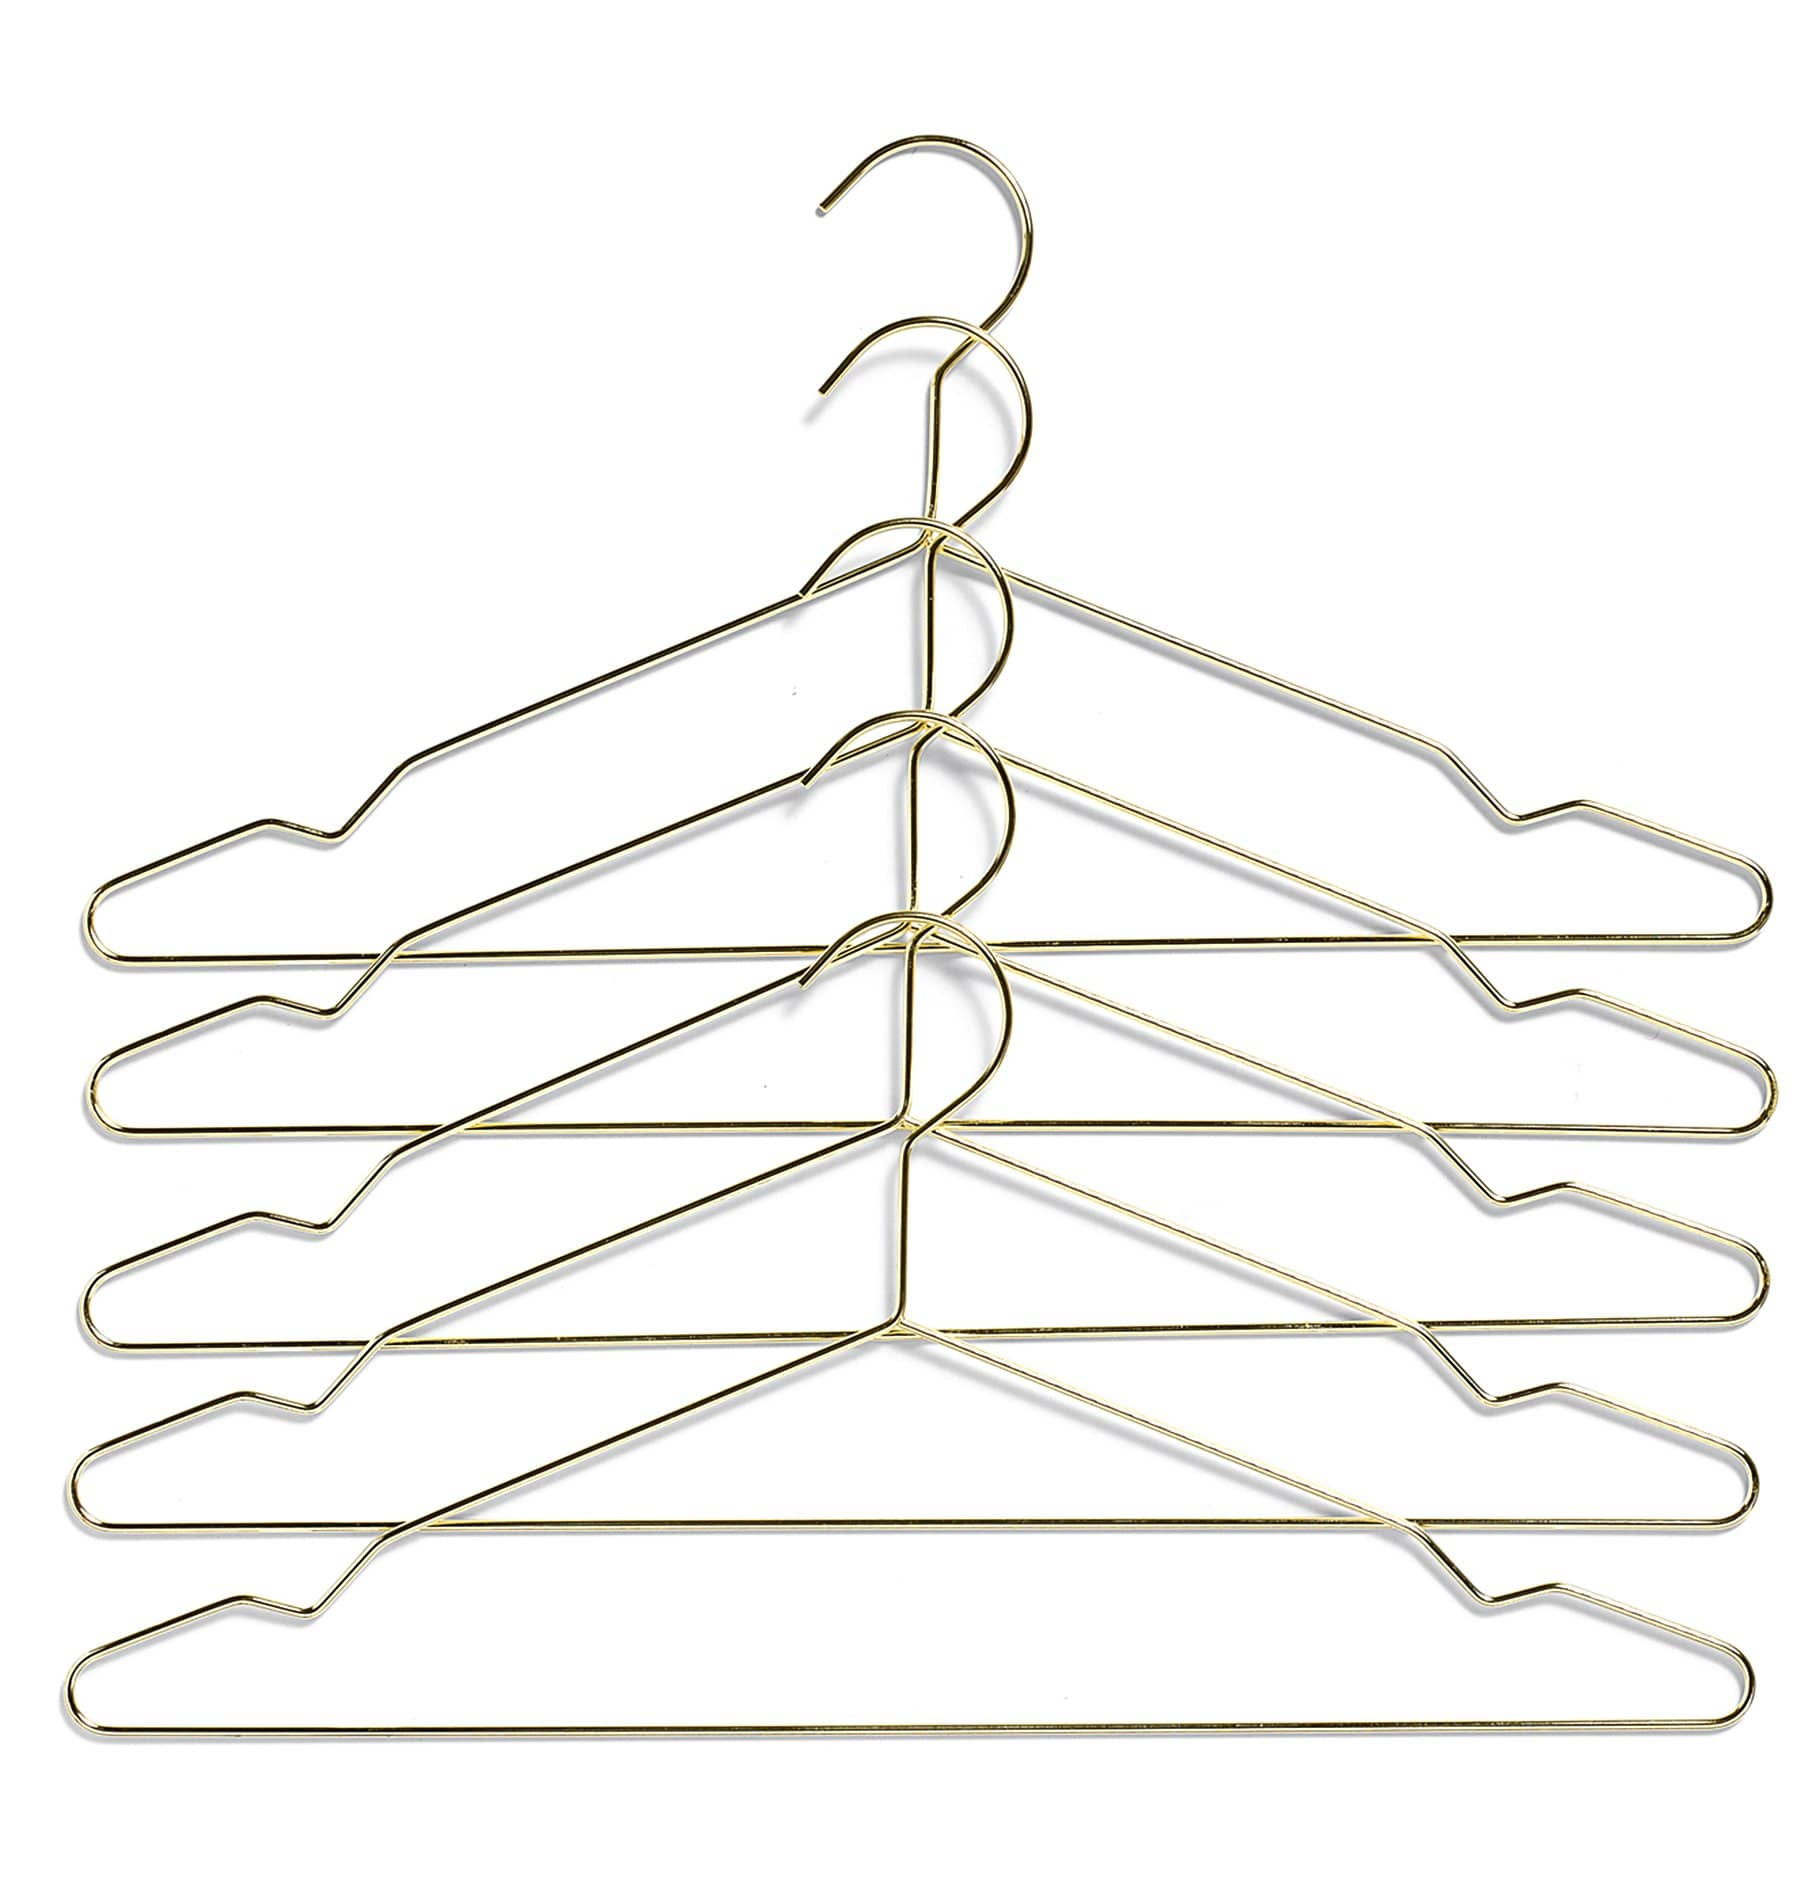 HAY Hang Clothing Hangers - Brass - Set of 5